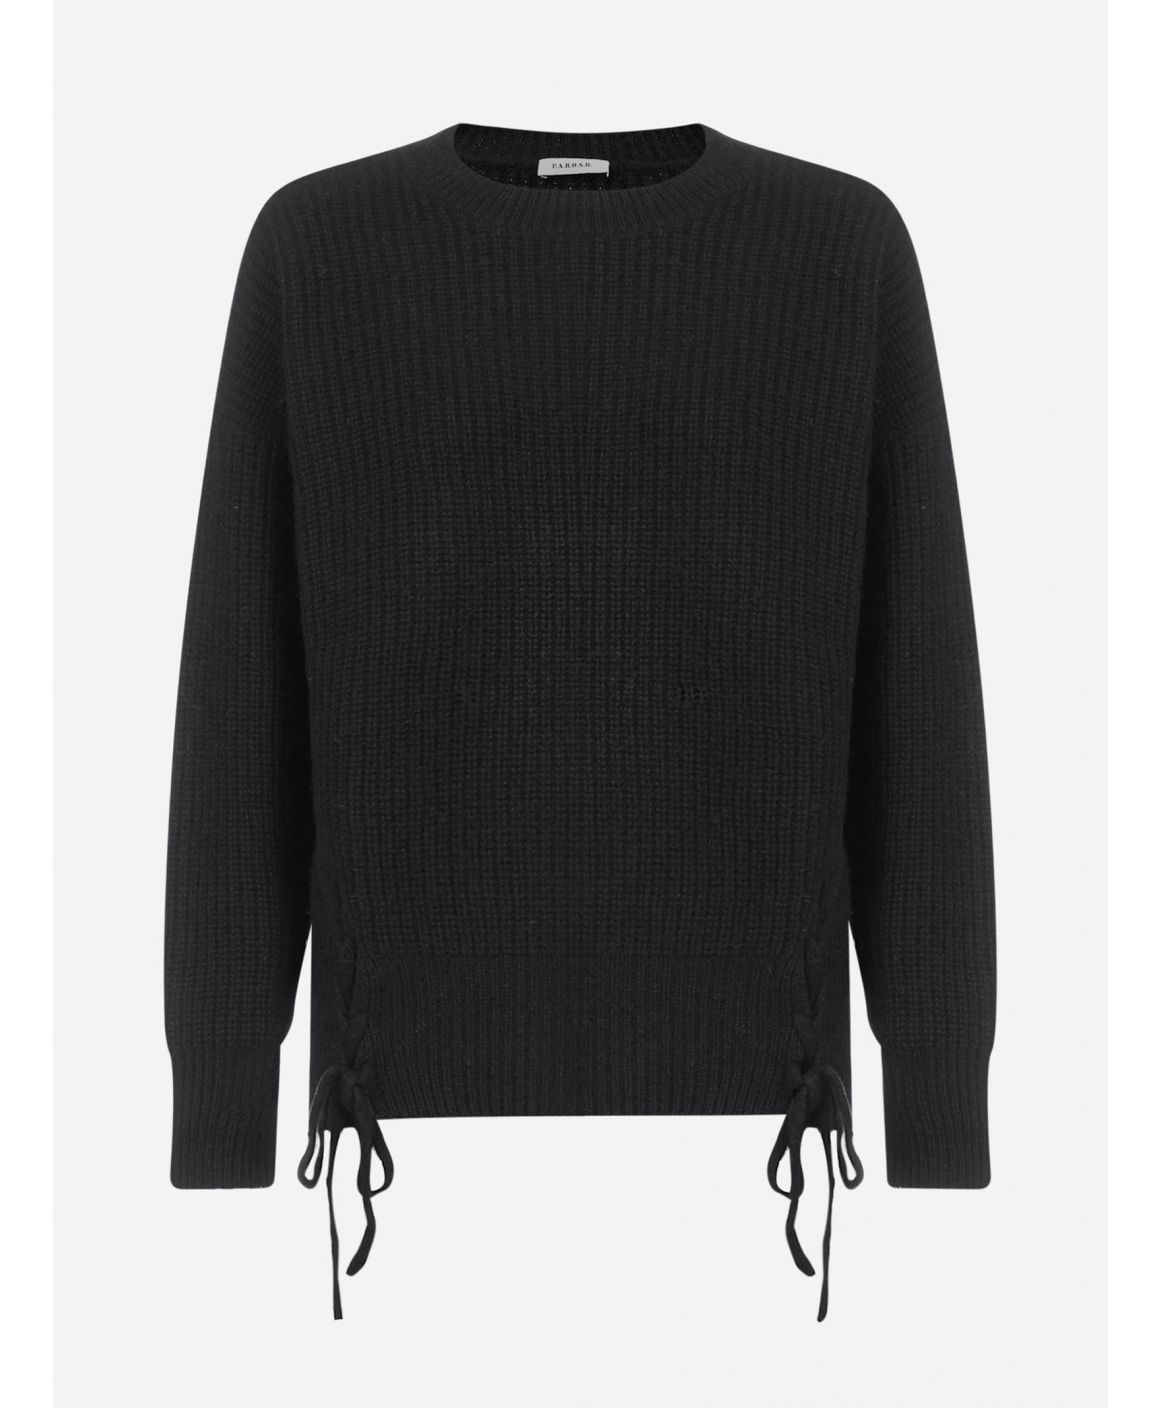 Leccio wool, yak and cashmere sweater